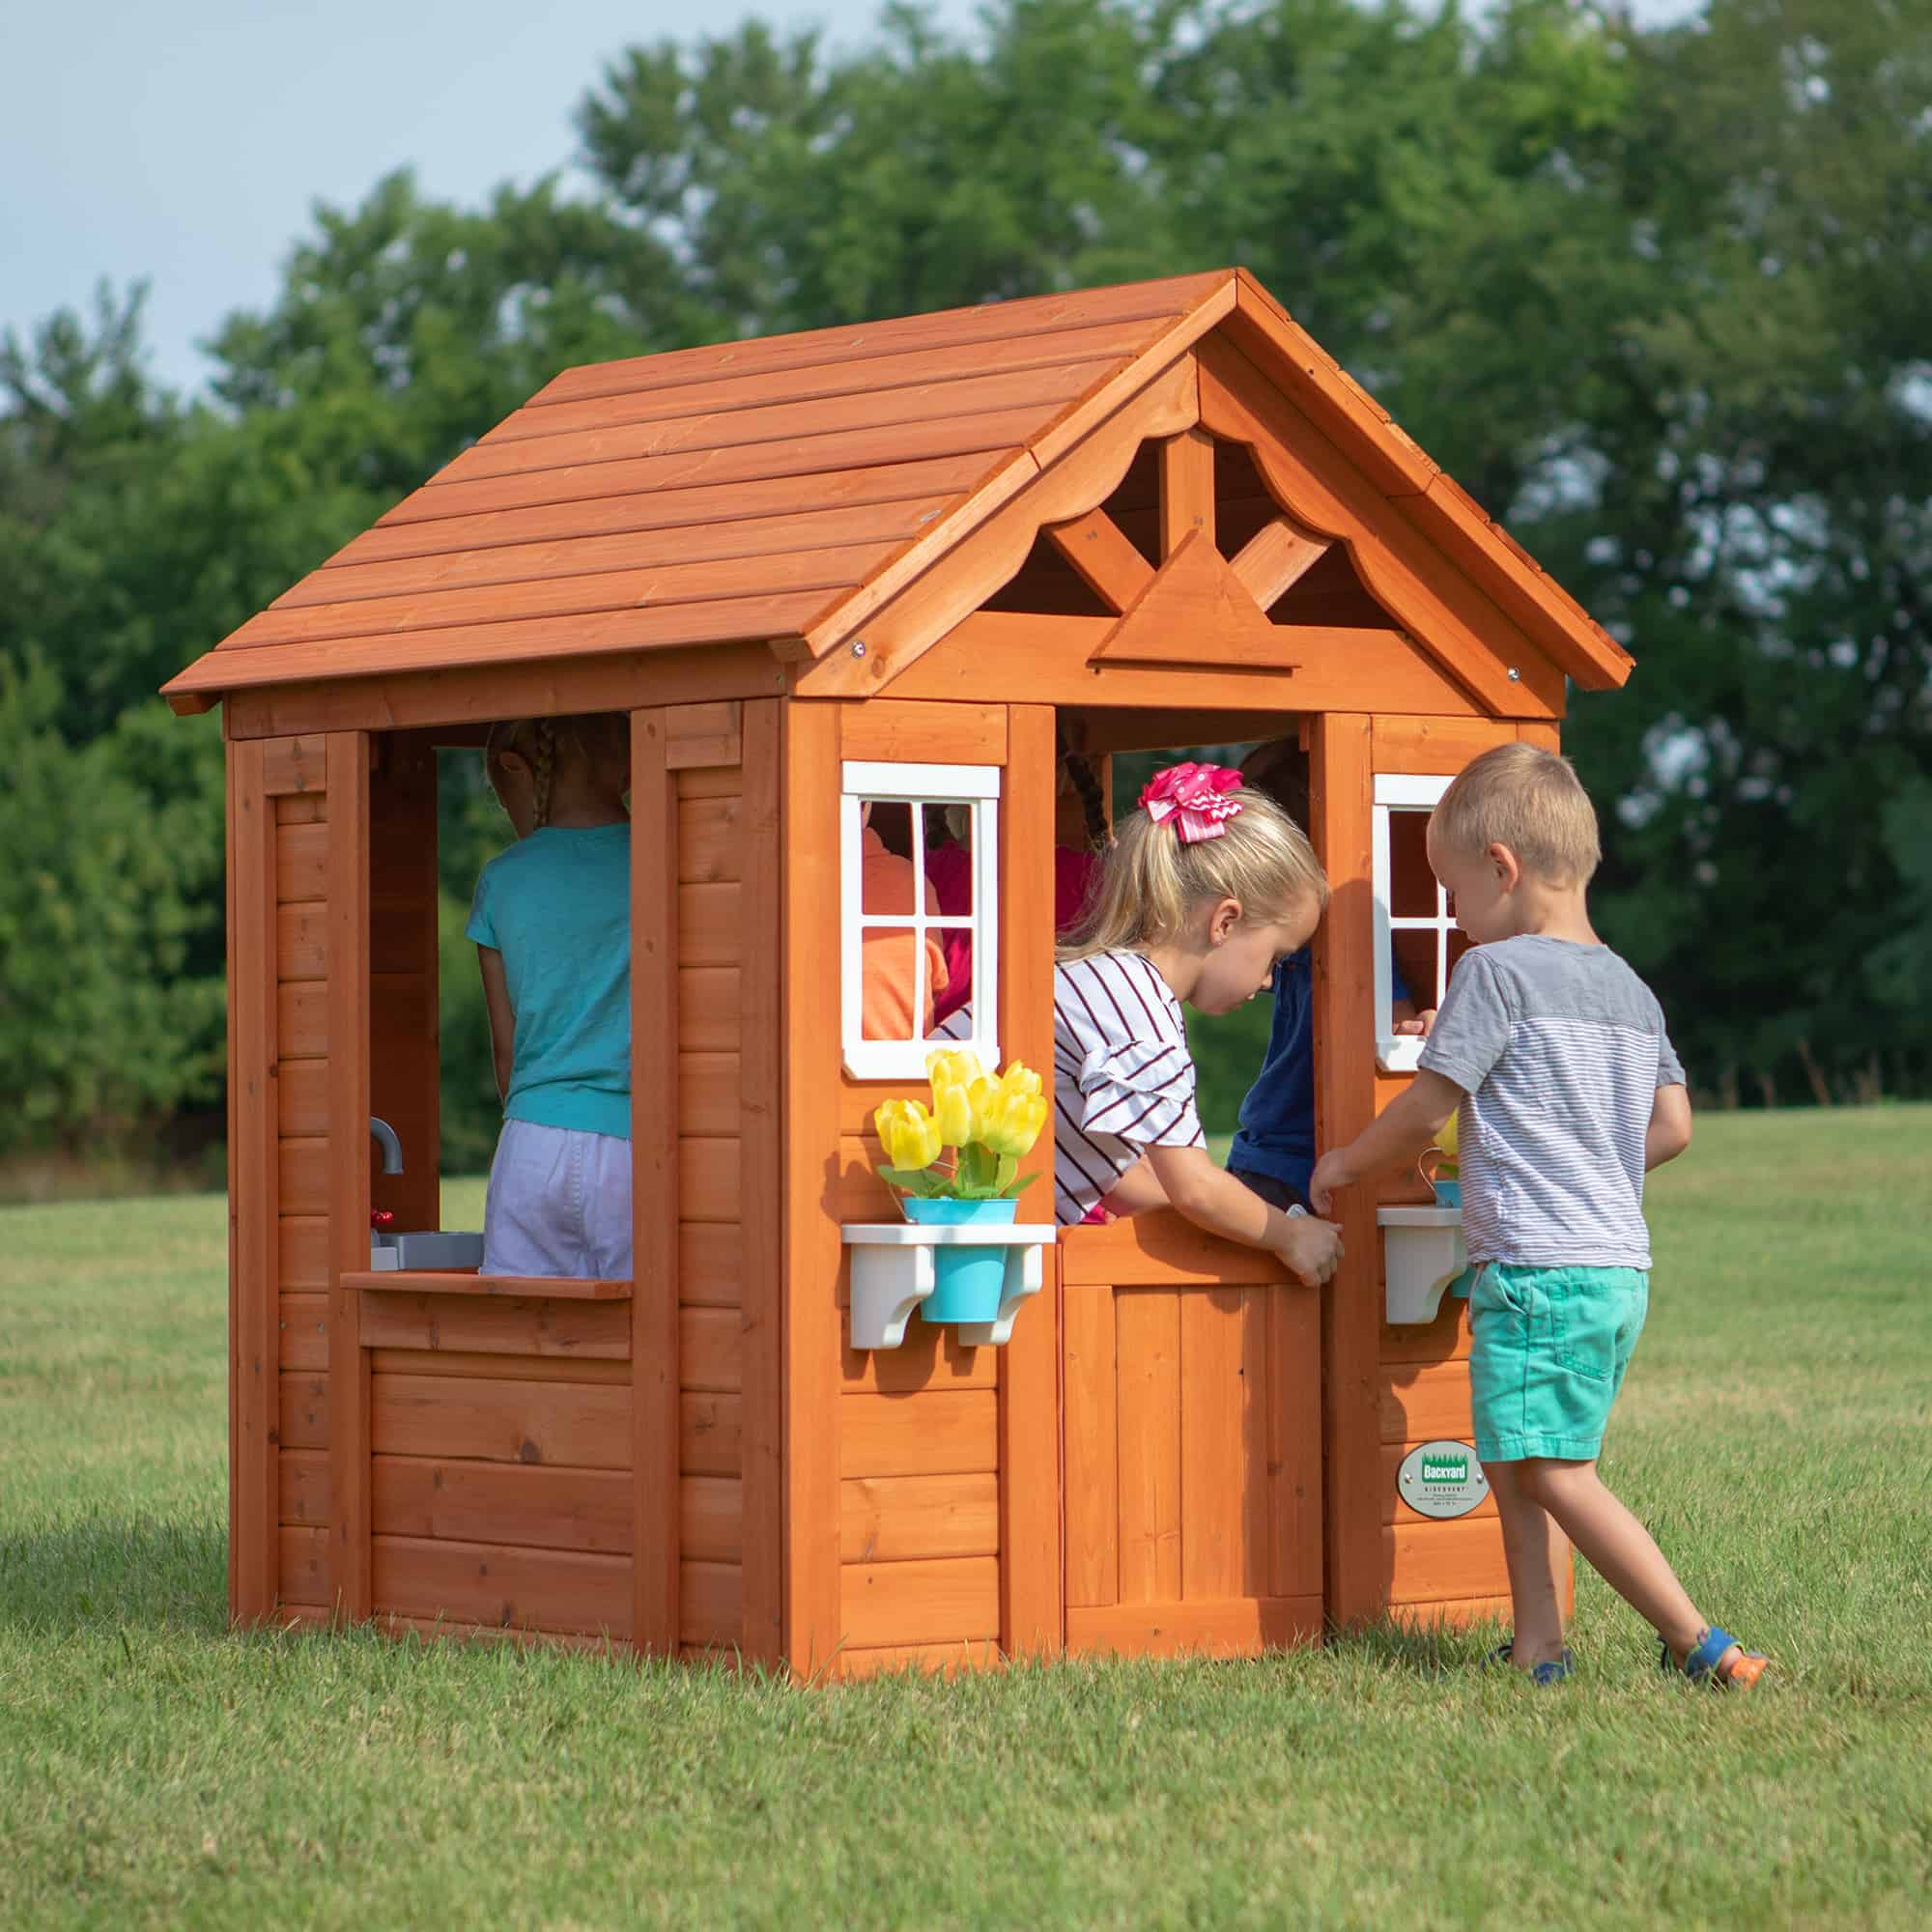 Timberlake cedar wooden playhouse with children playing together.